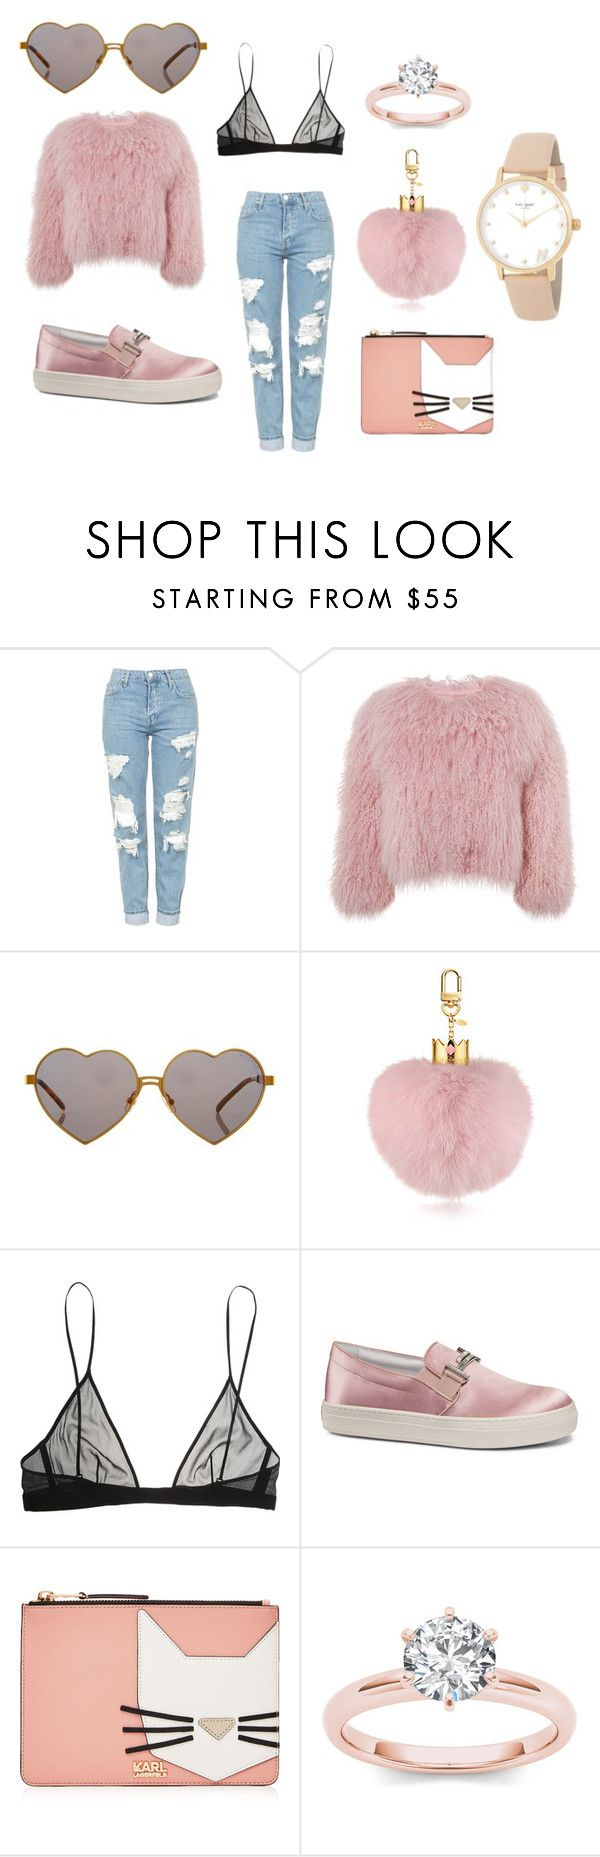 """baby"" by kelsiecloe on Polyvore featuring Topshop, Charlotte Simone, Wildfox, Yves Saint Laurent, Tod's, Karl Lagerfeld and Kate Spade"